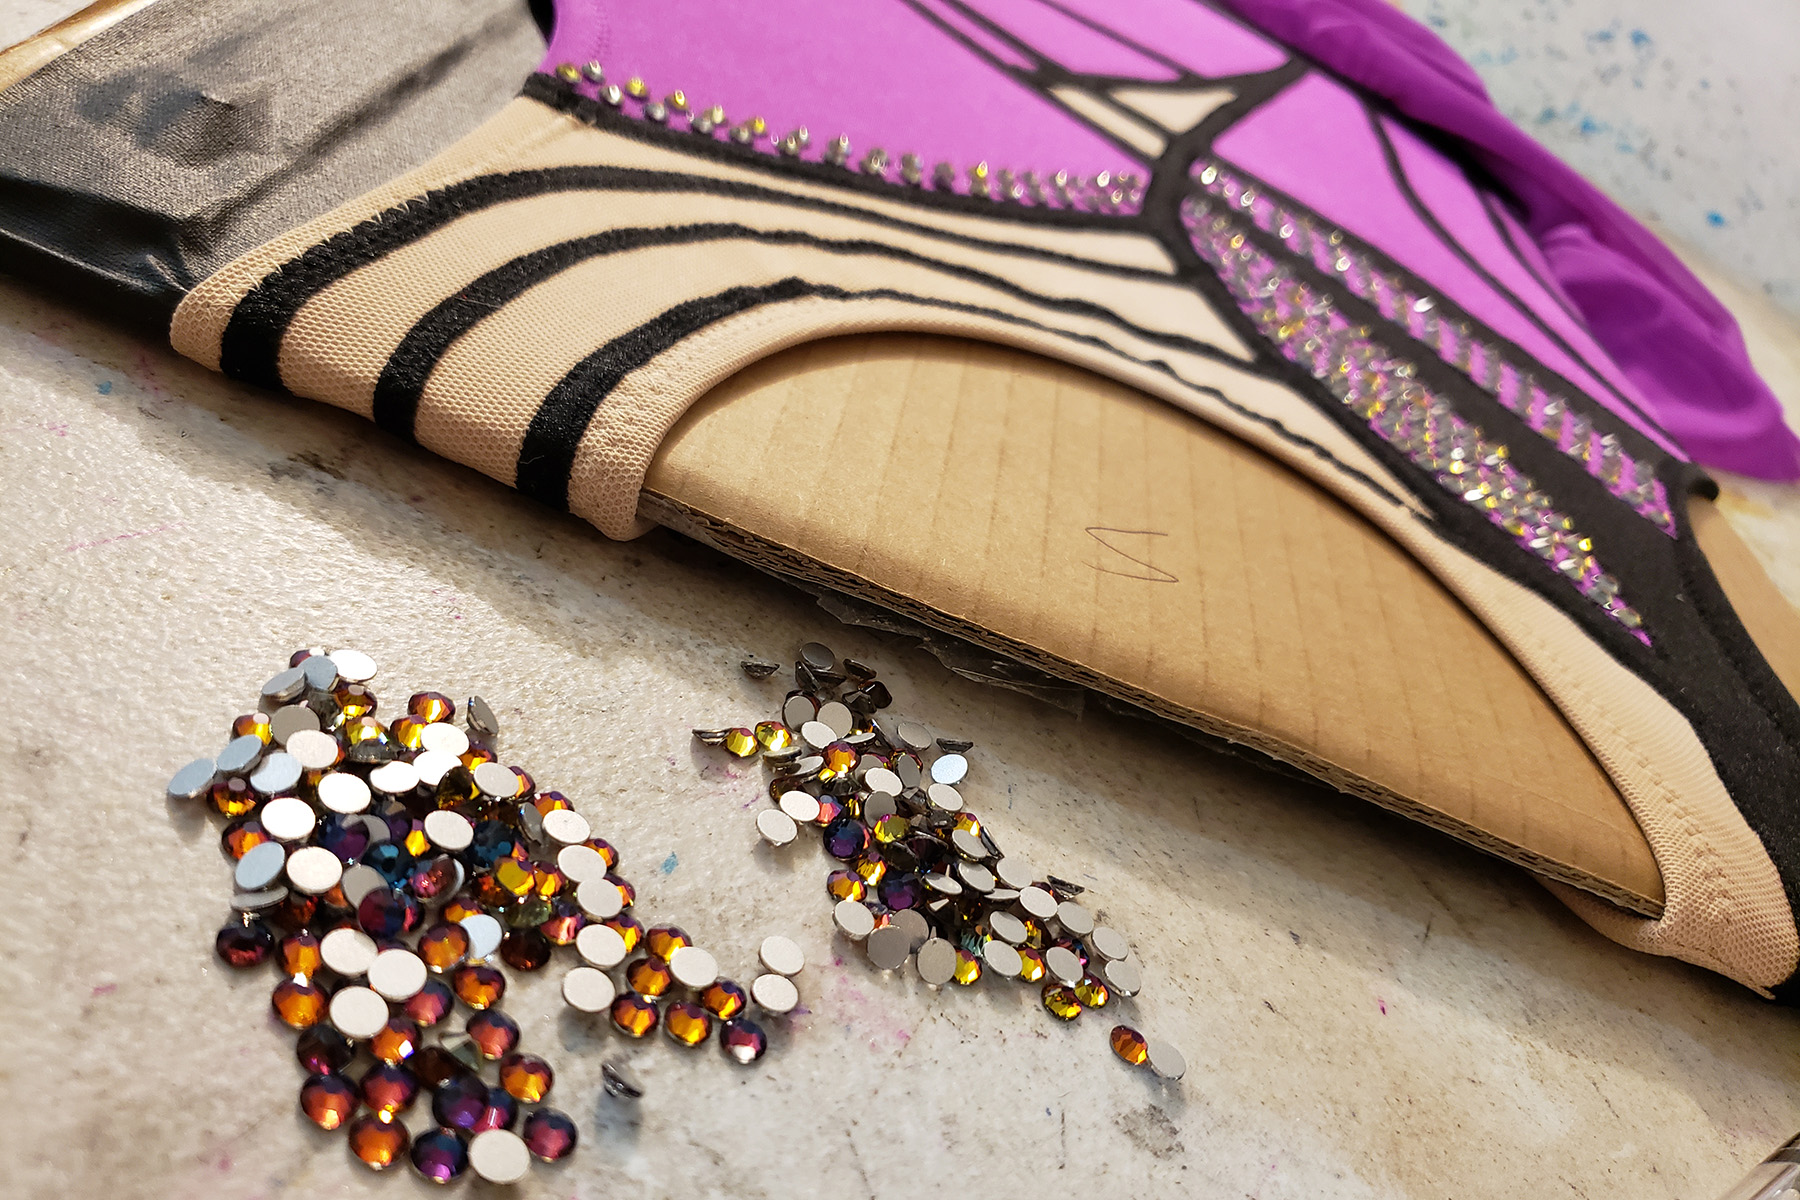 A close up view of the purple and black skating dress on a cardboard stretcher, with a pile of purple-blue rhinestones in front of it.